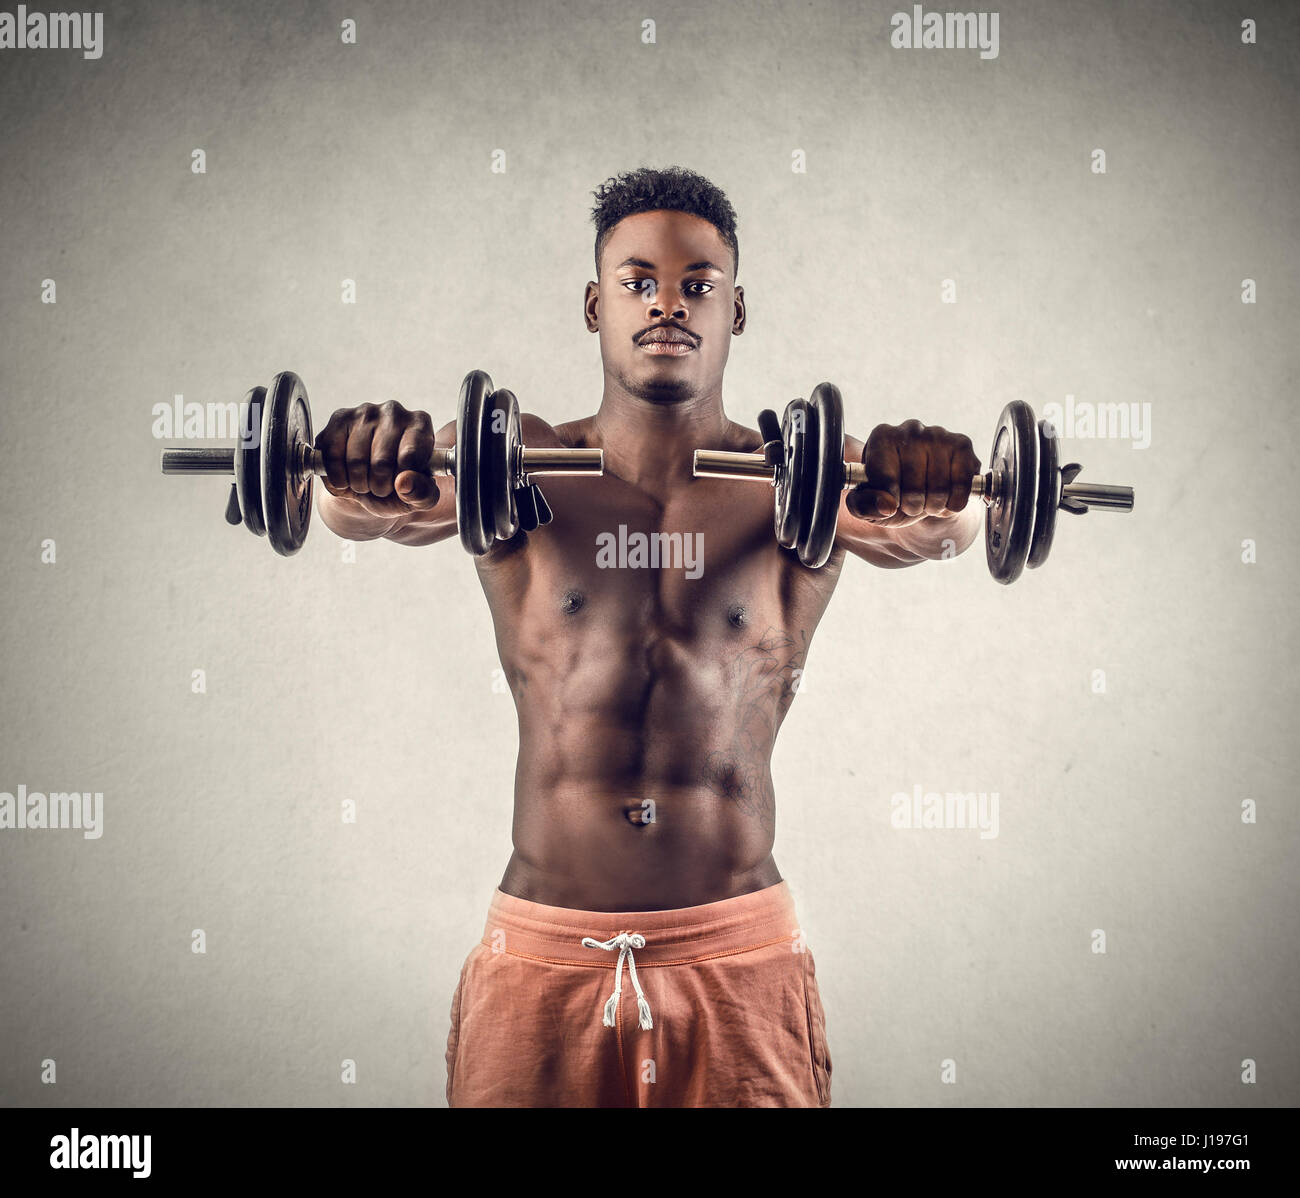 Black man working out - Stock Image